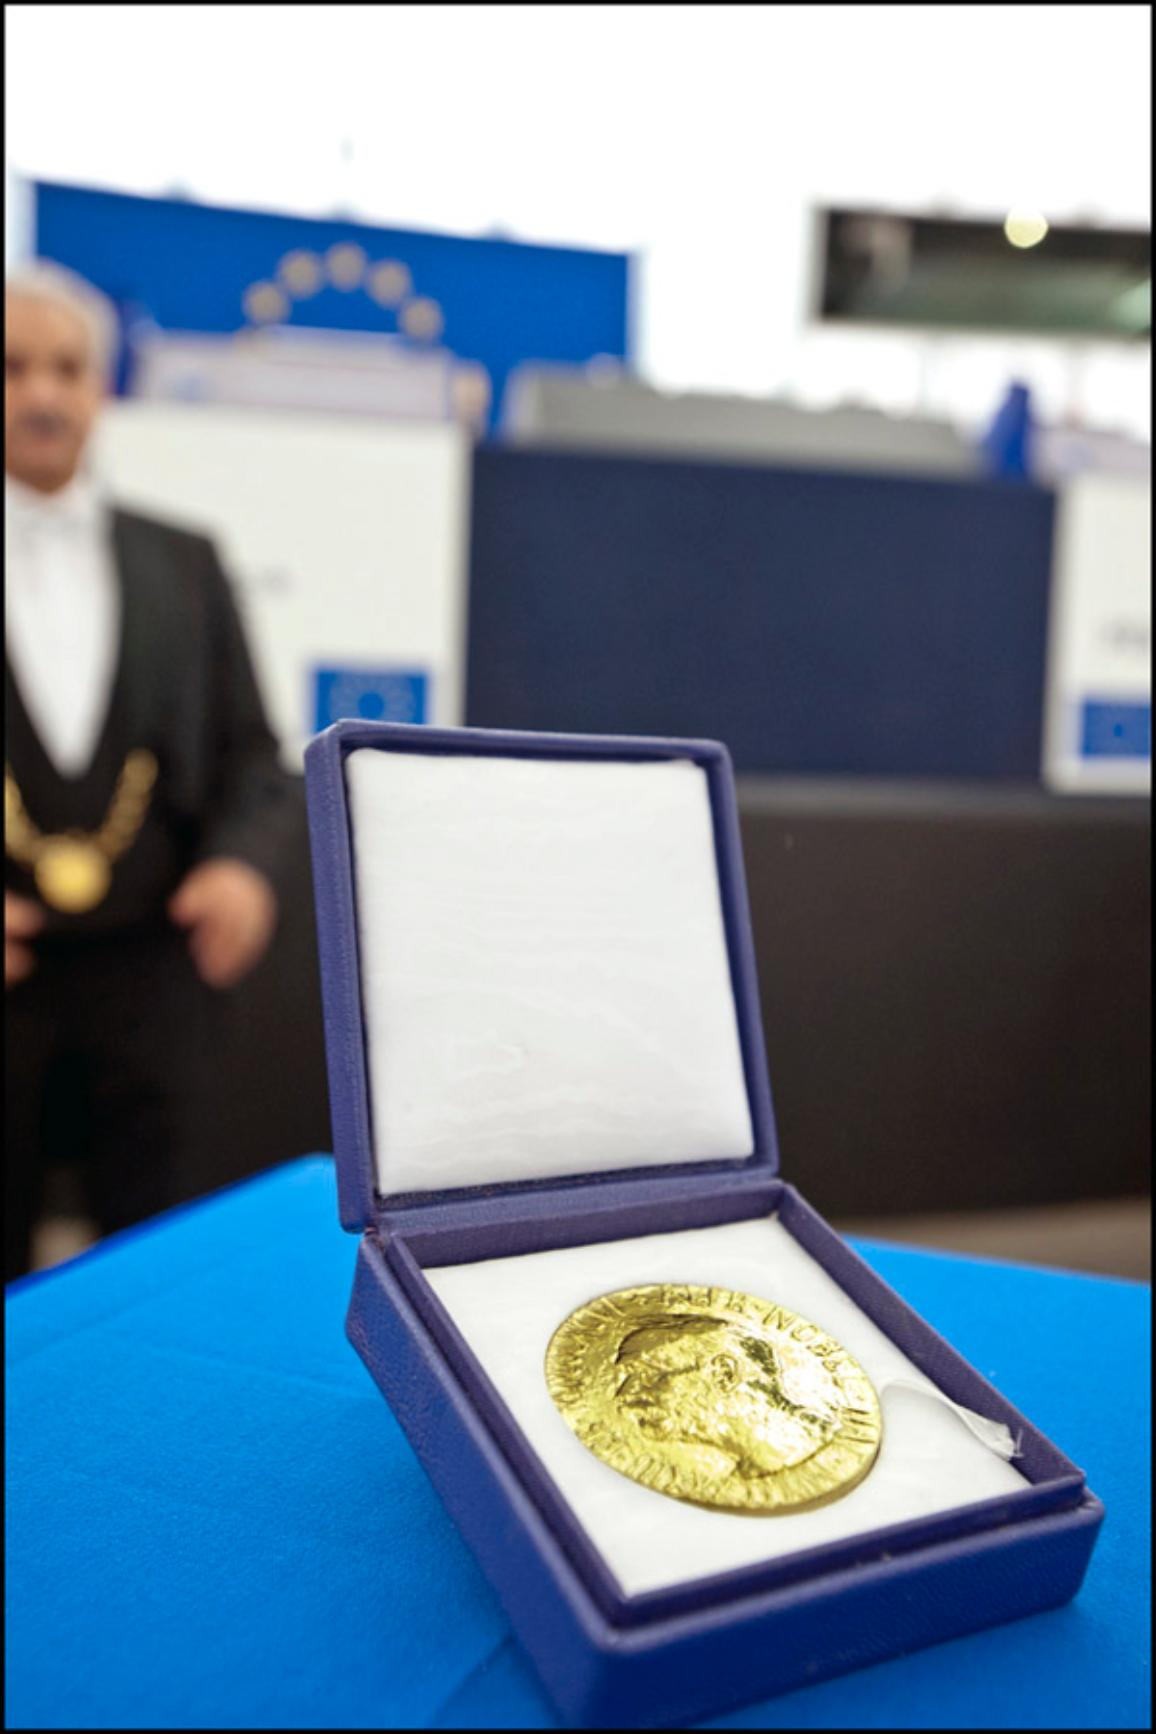 The Nobel Prize medal in the EP hemicycle